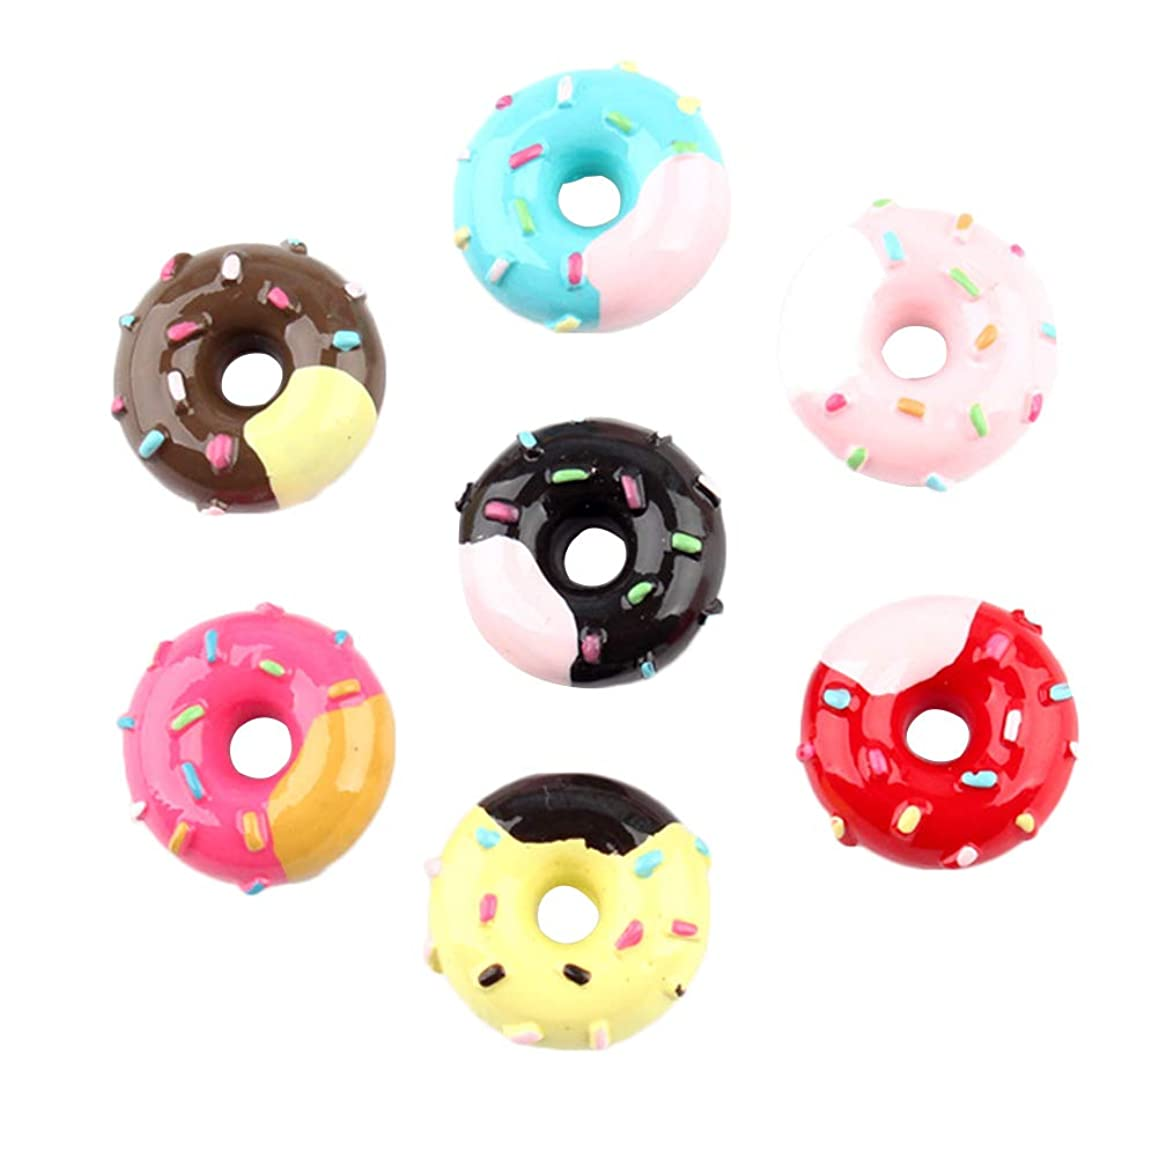 SUPVOX 20 Pcs Resin Flatback cabochons Cream Donut Slime Charms Beads Embellishment DIY Craft Scrapbooking Jewelry Making